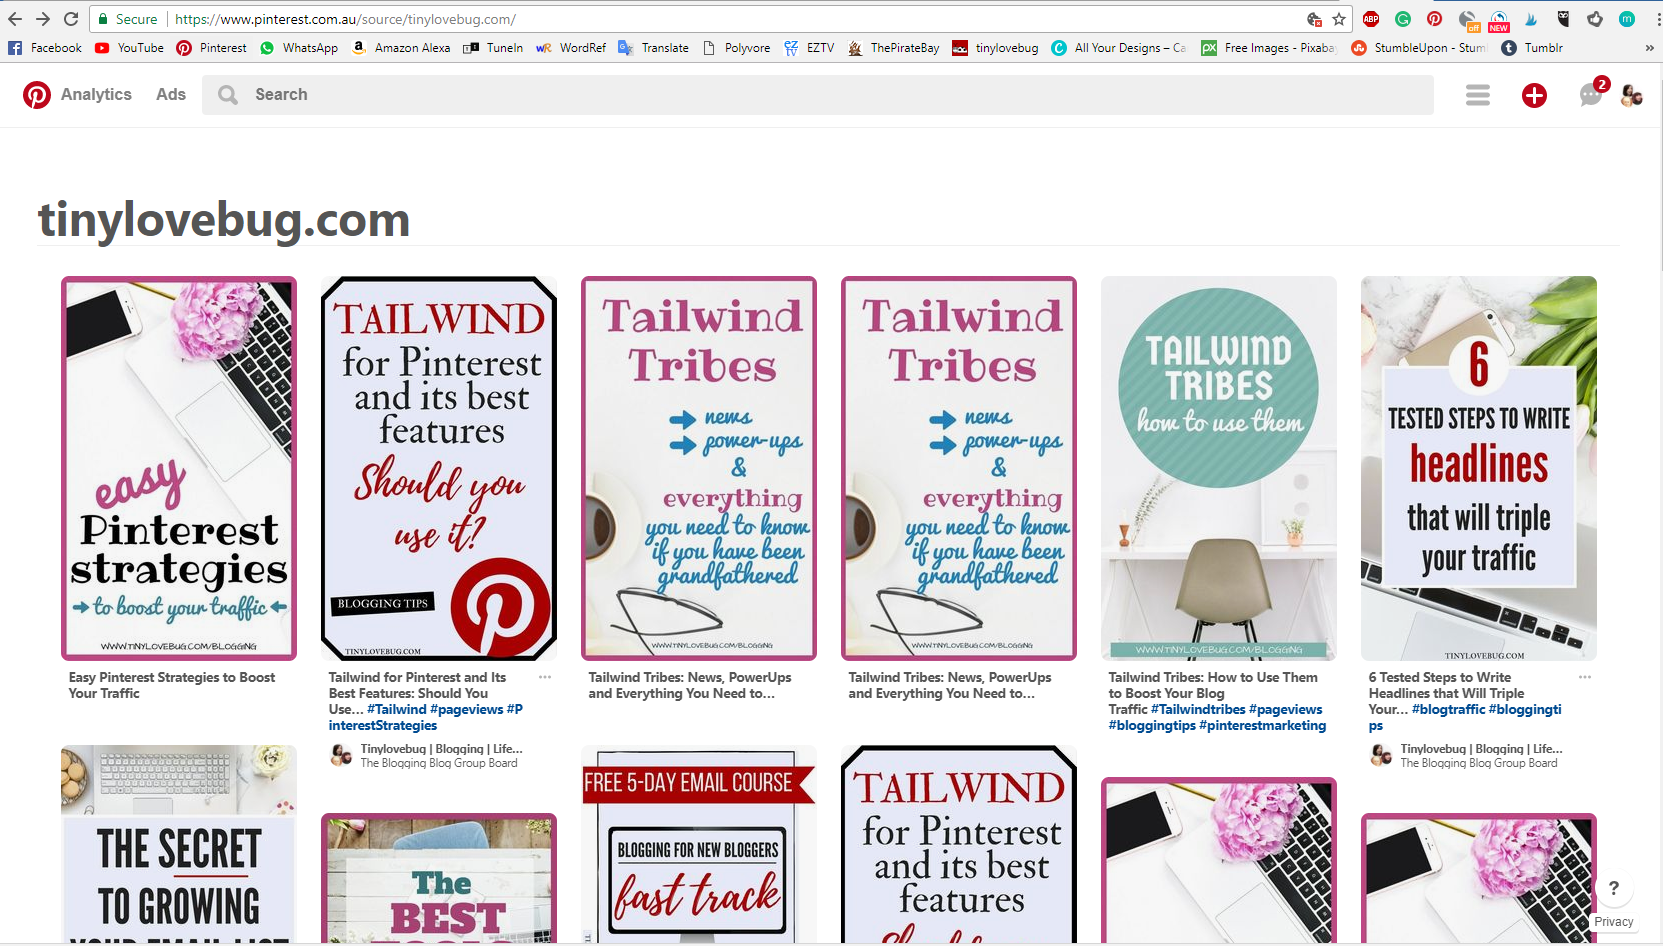 How to use Pinterest for your blog: use the Pinterest source page